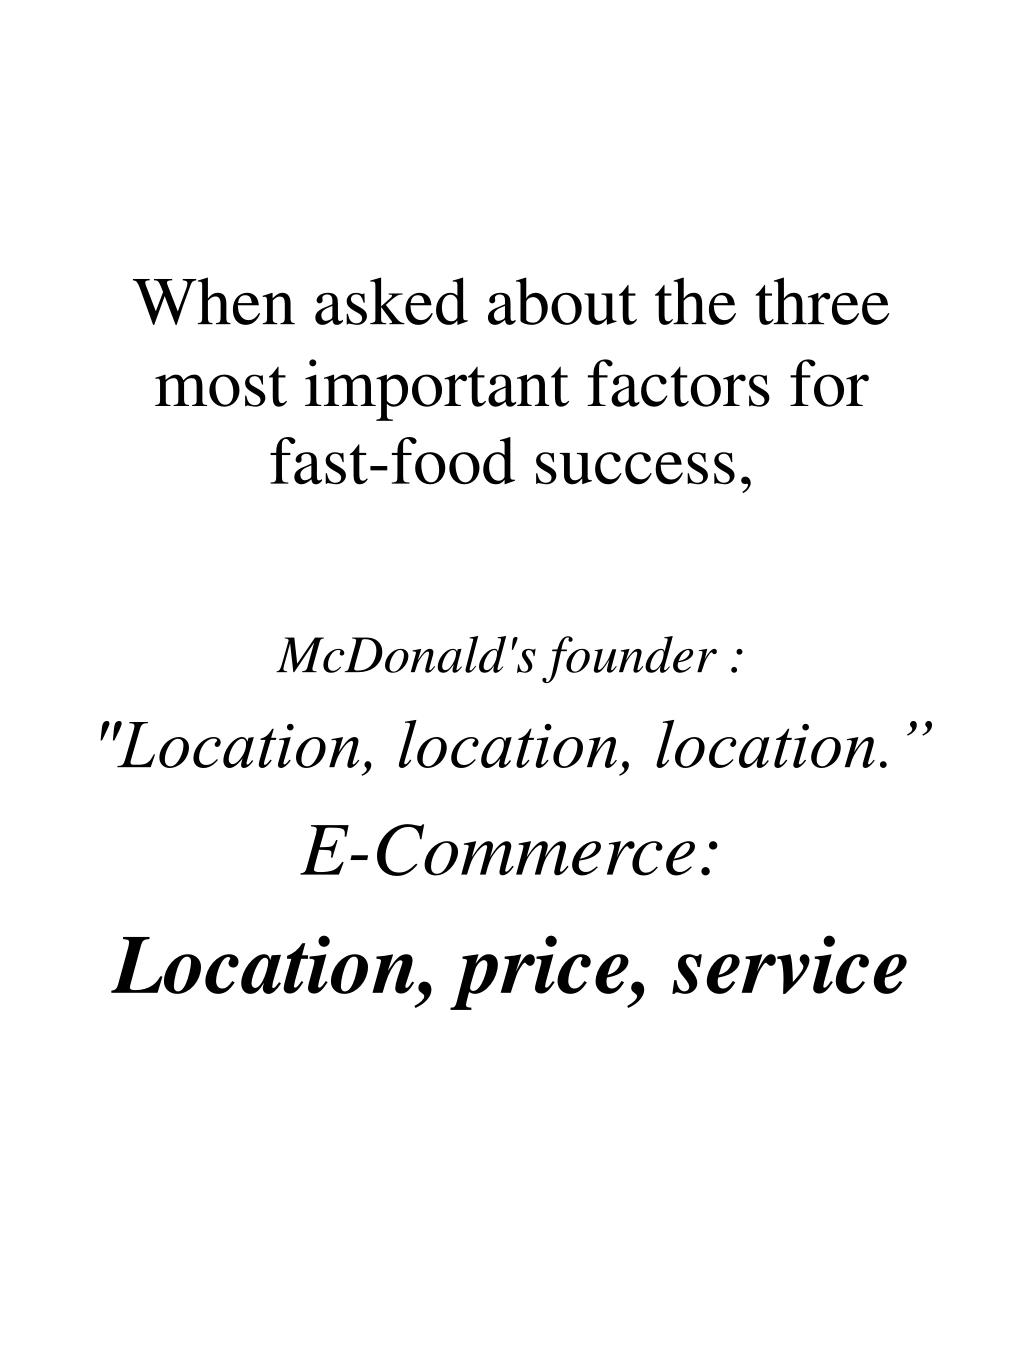 When asked about the three most important factors for fast-food success,